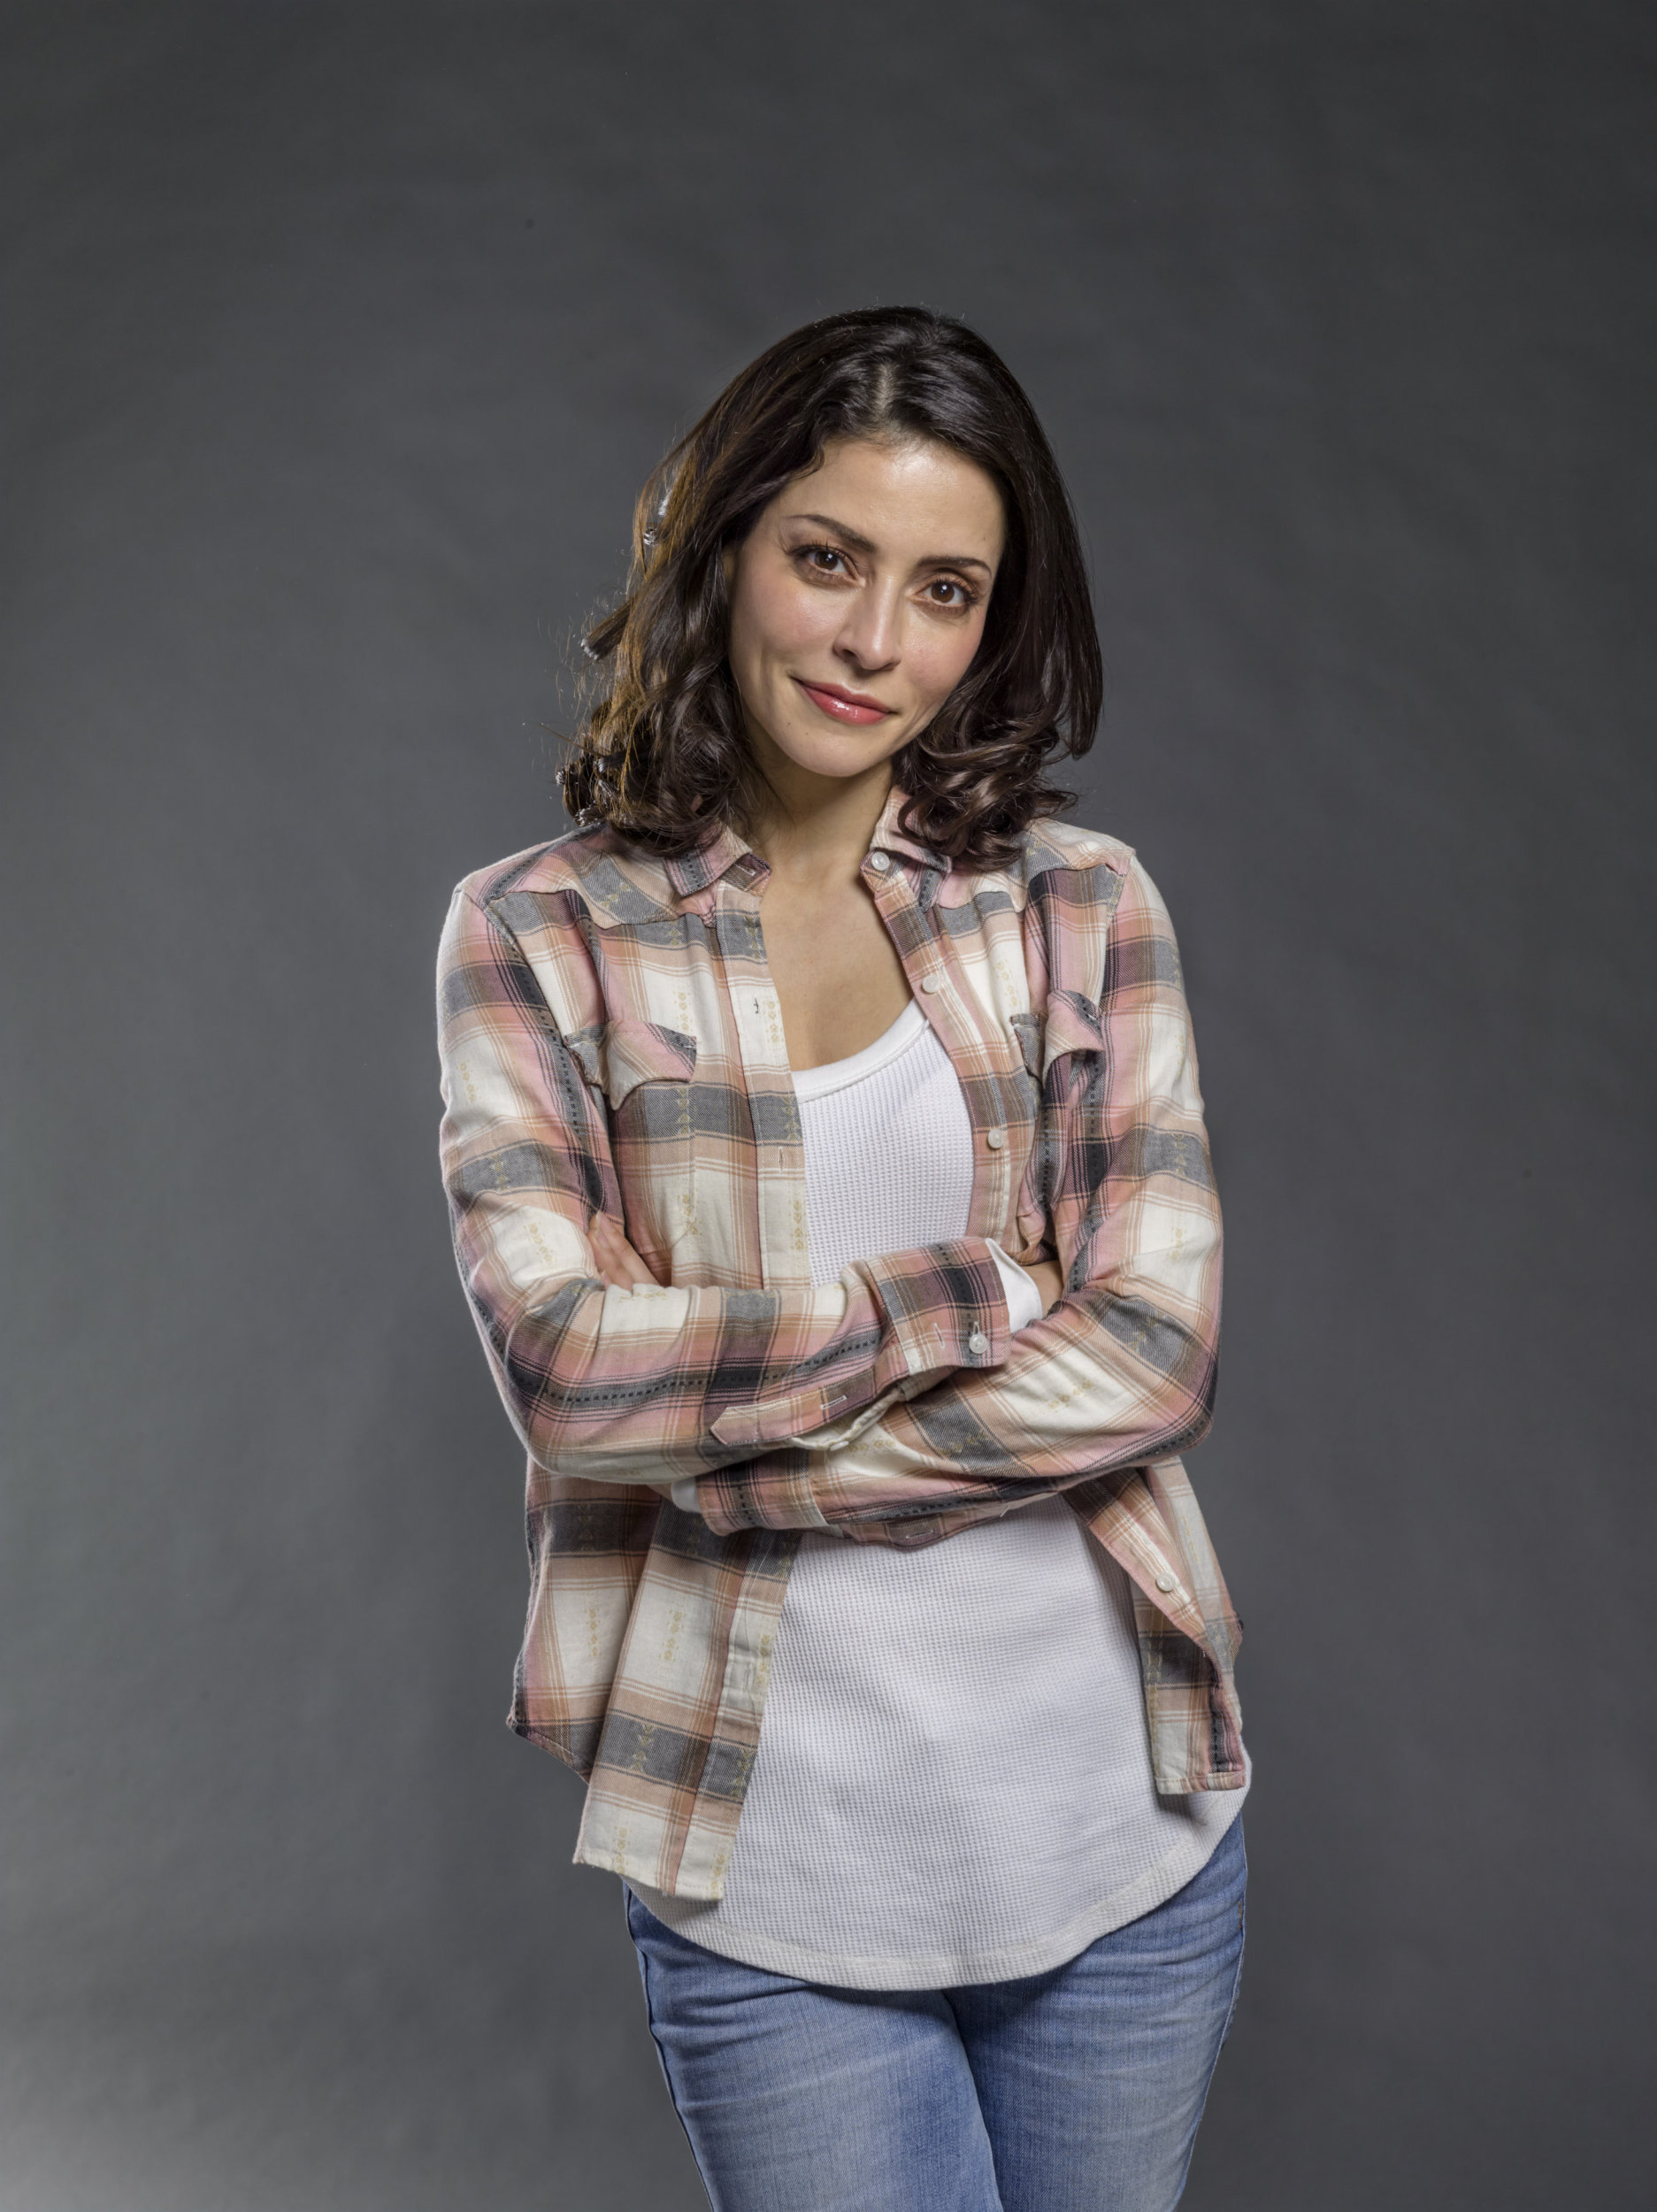 Emmanuelle Vaugier As Heather In Love In Paradise